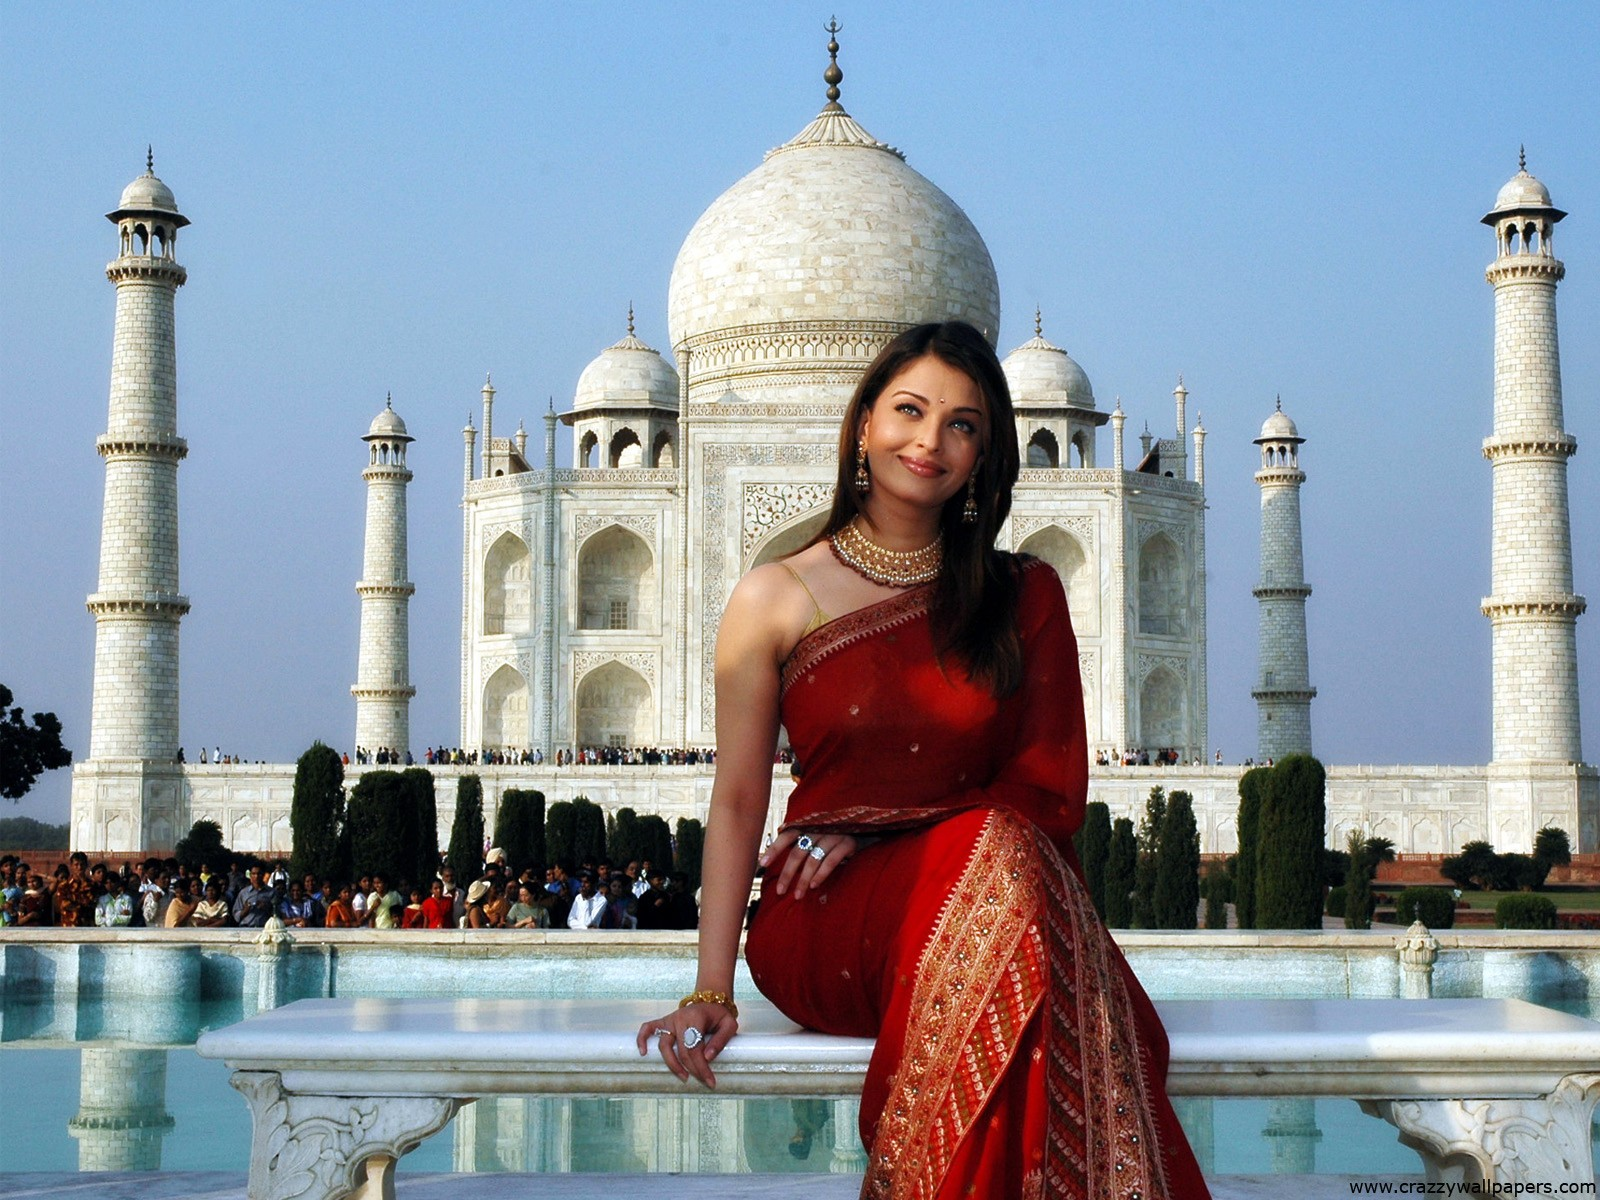 Beautiful Aishwarya Rai and Taj Mahal